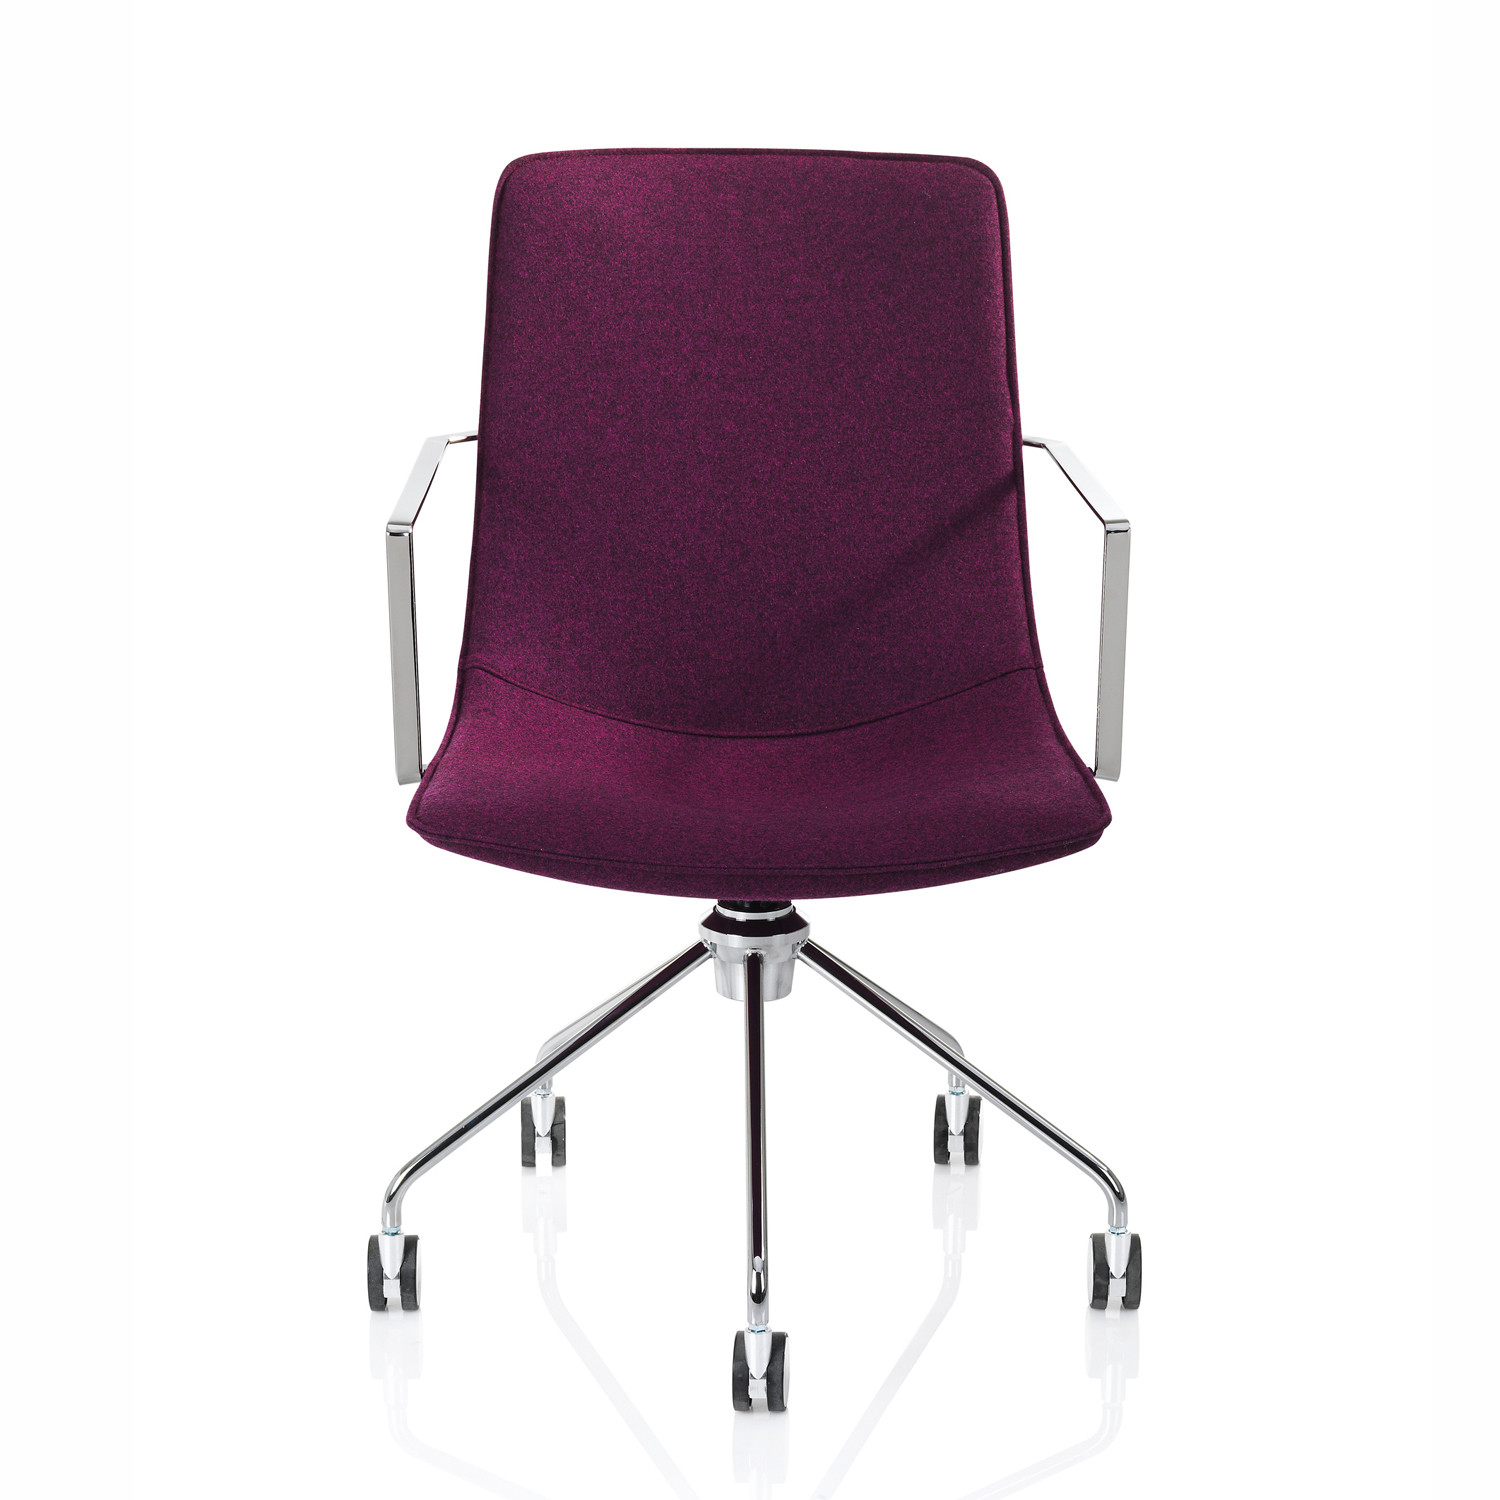 Comet Armchair on five-star base with castors